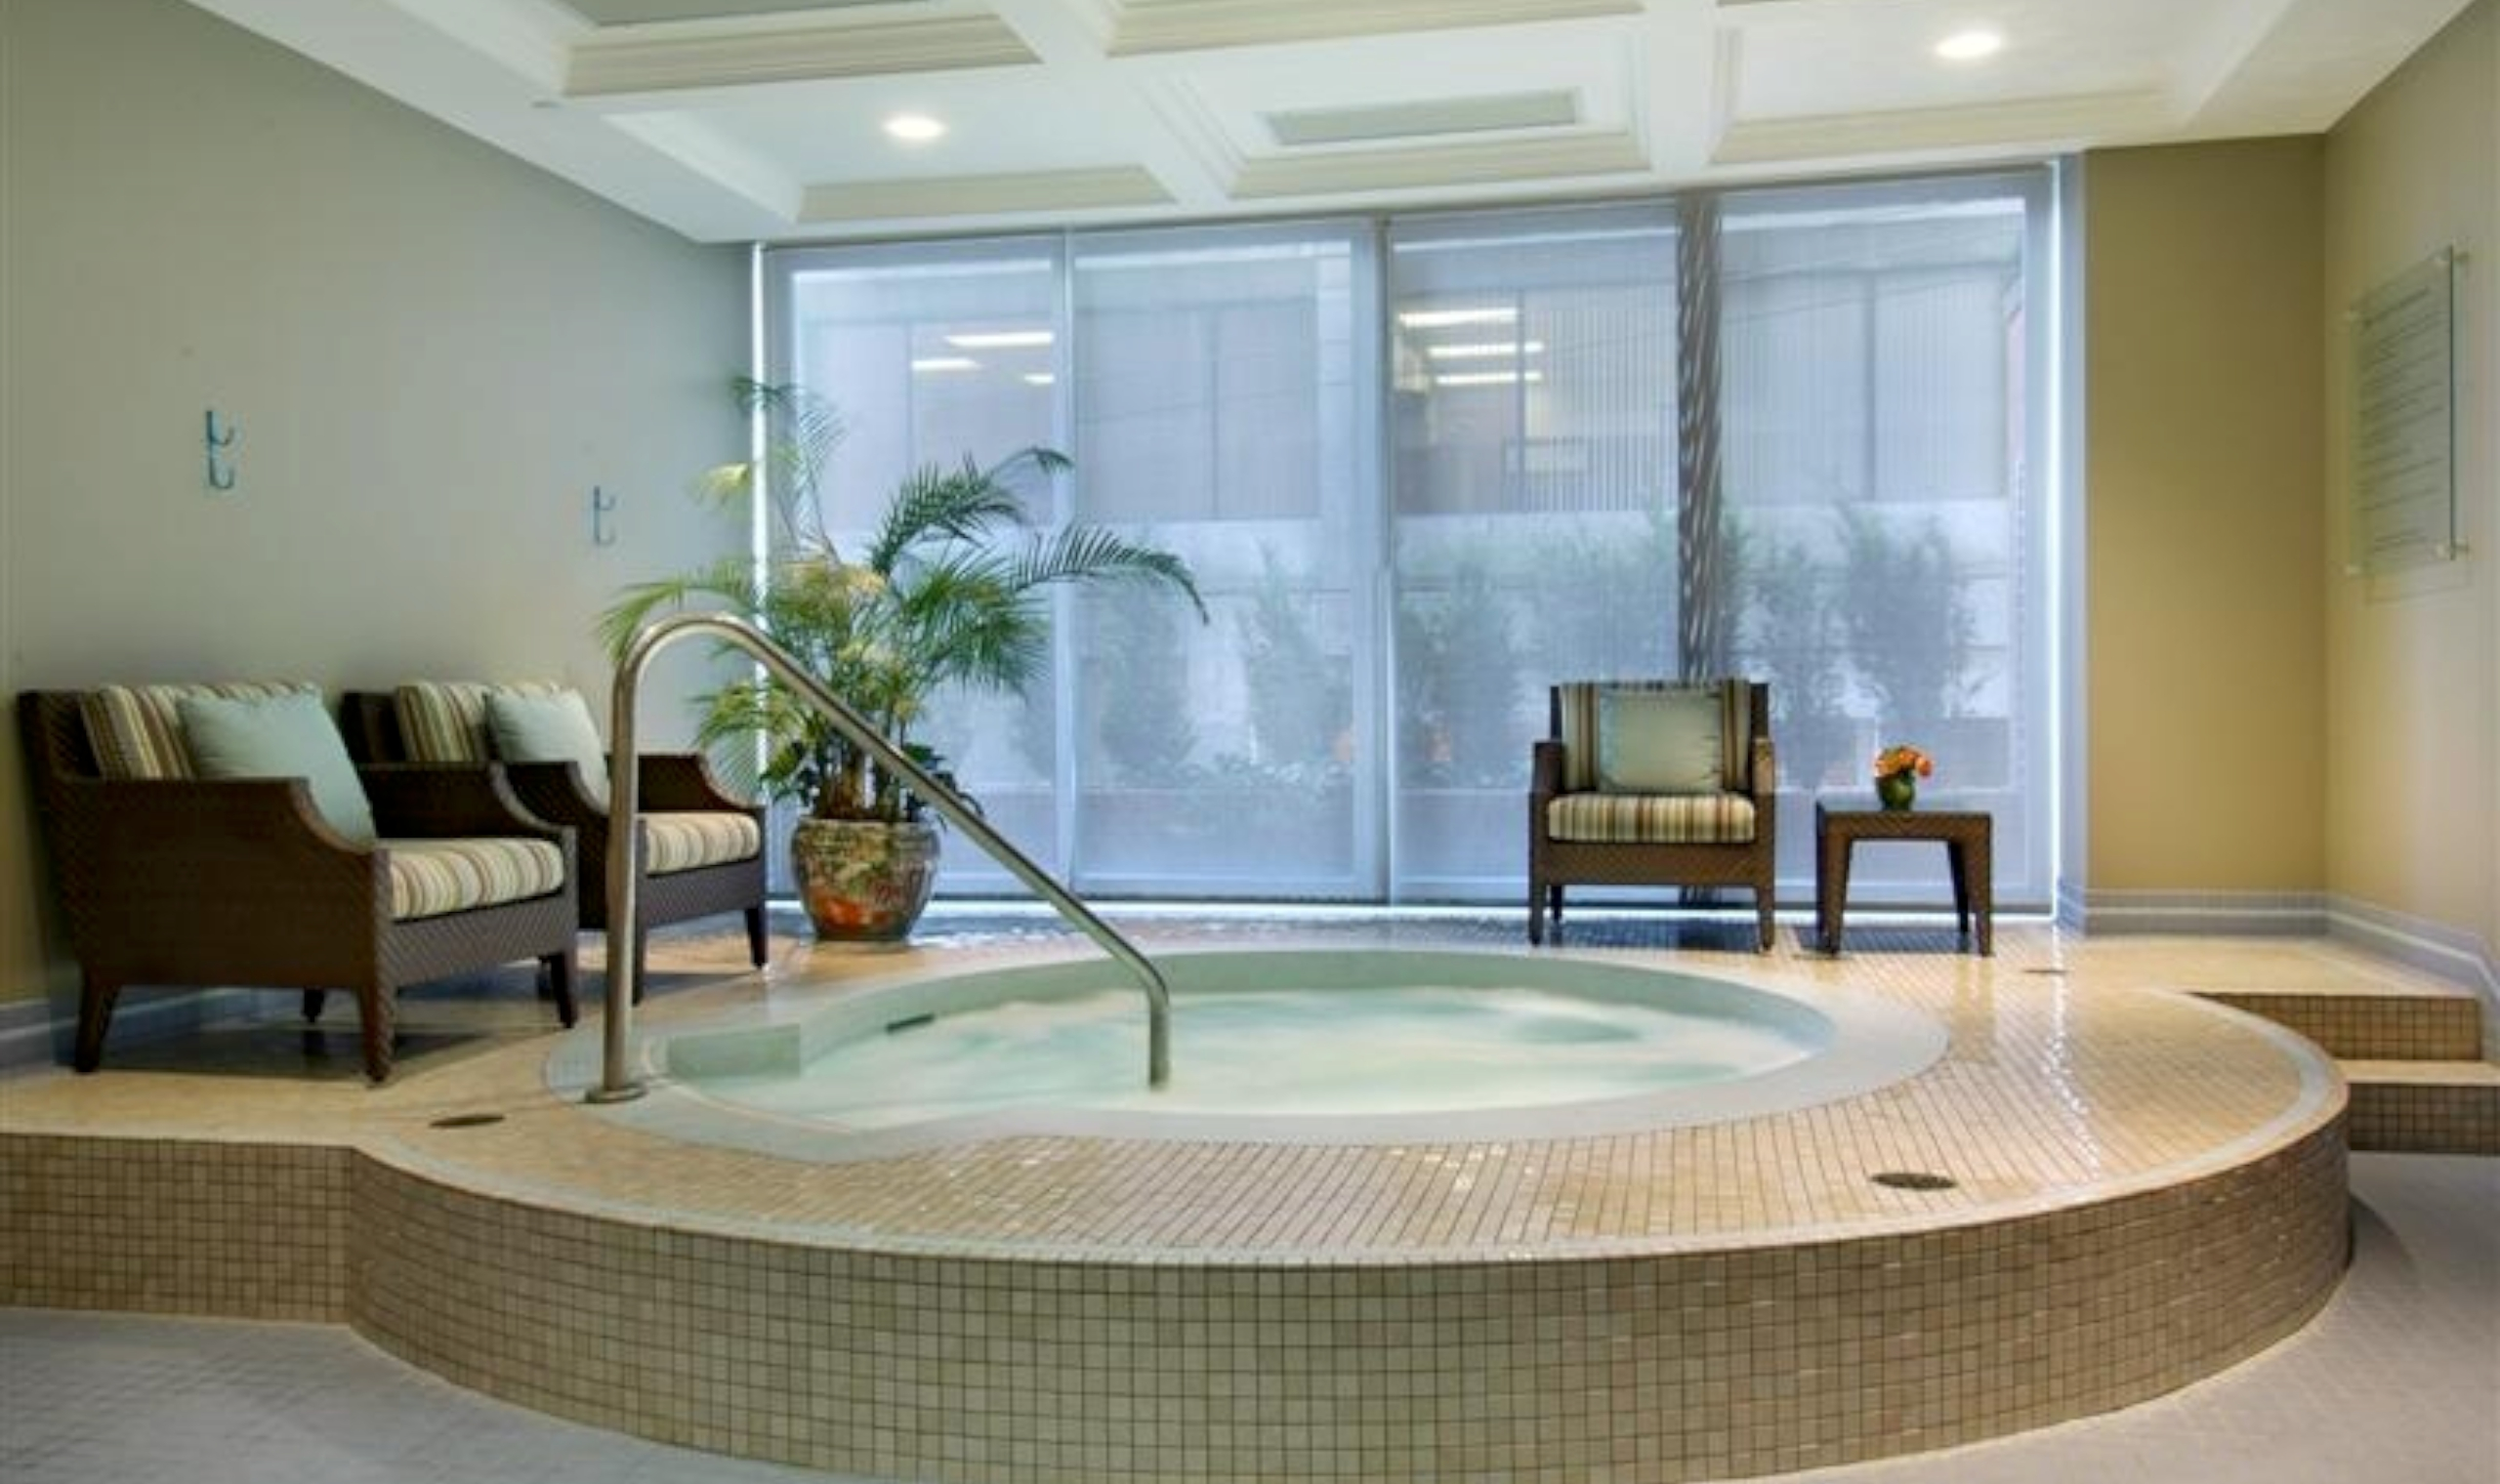 Vancouver Bc Hotels With Jacuzzi In Room